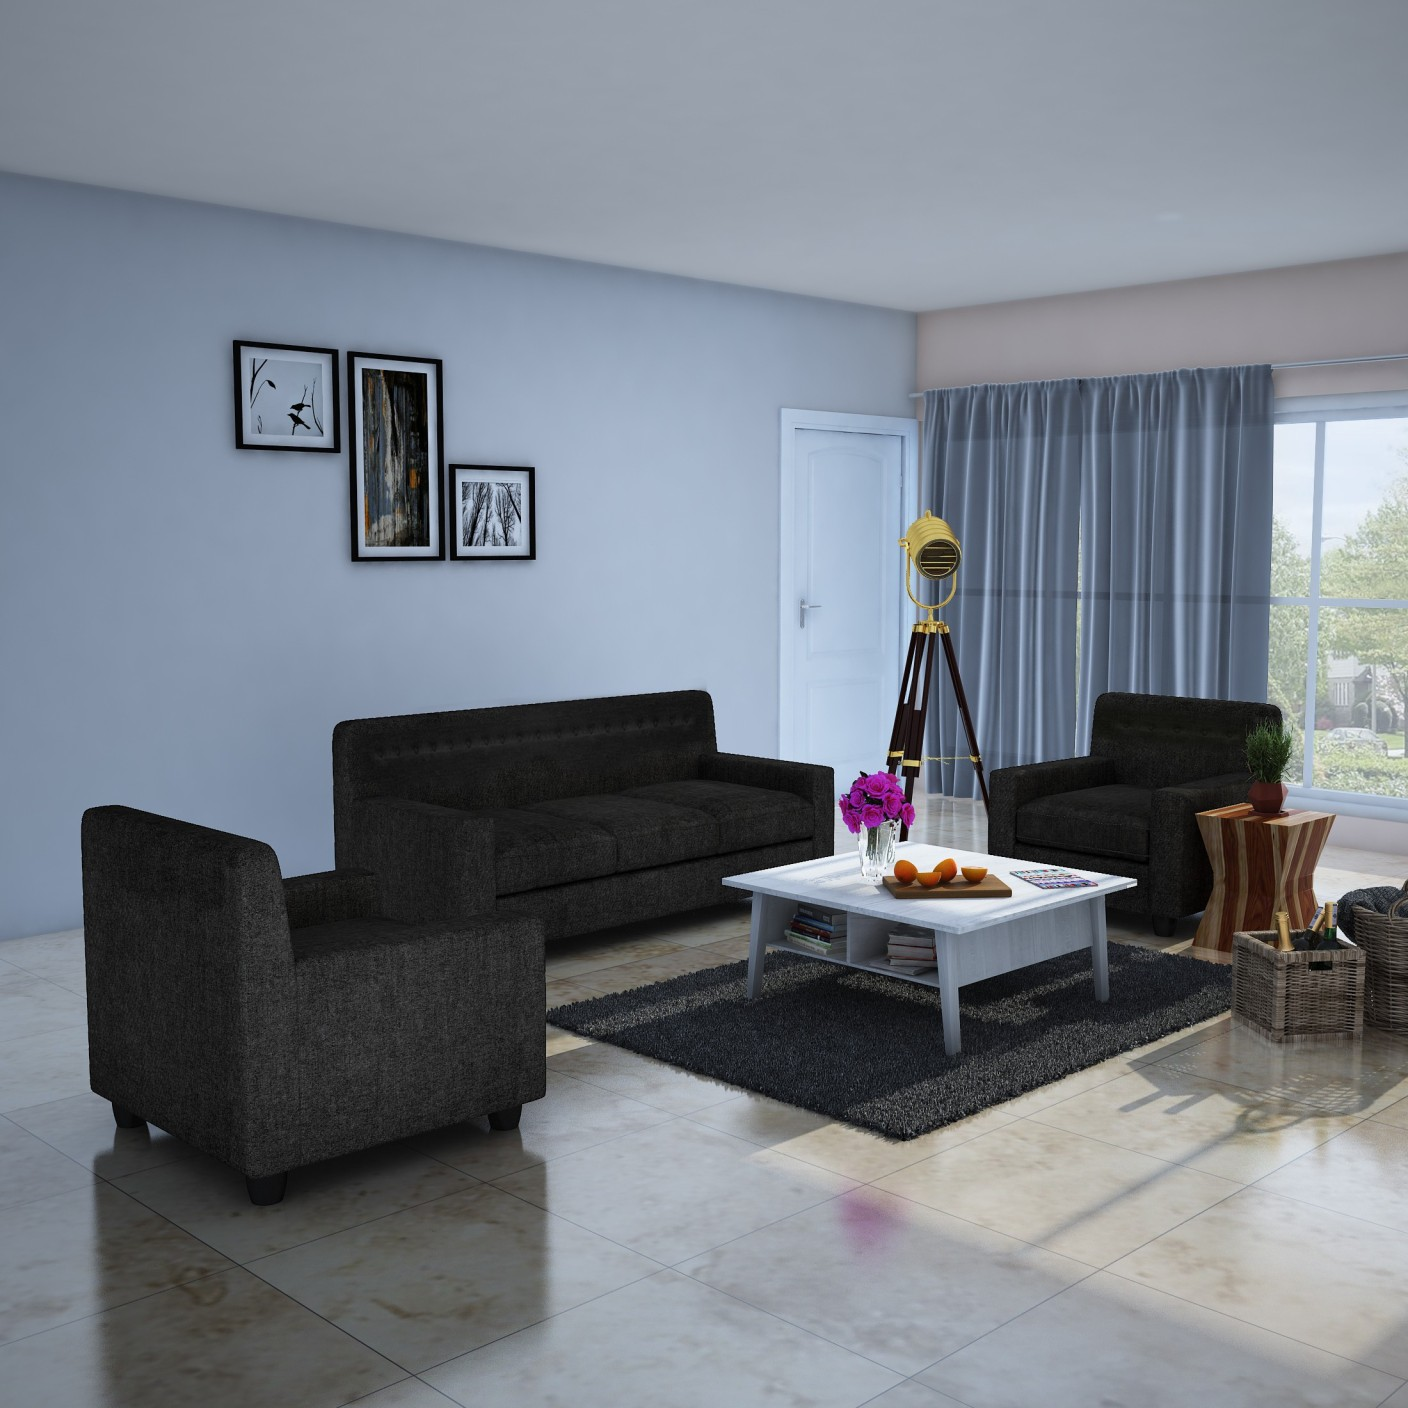 Dolphin Solitaire Fabric 3 1 1 Grey Sofa Set Price in India